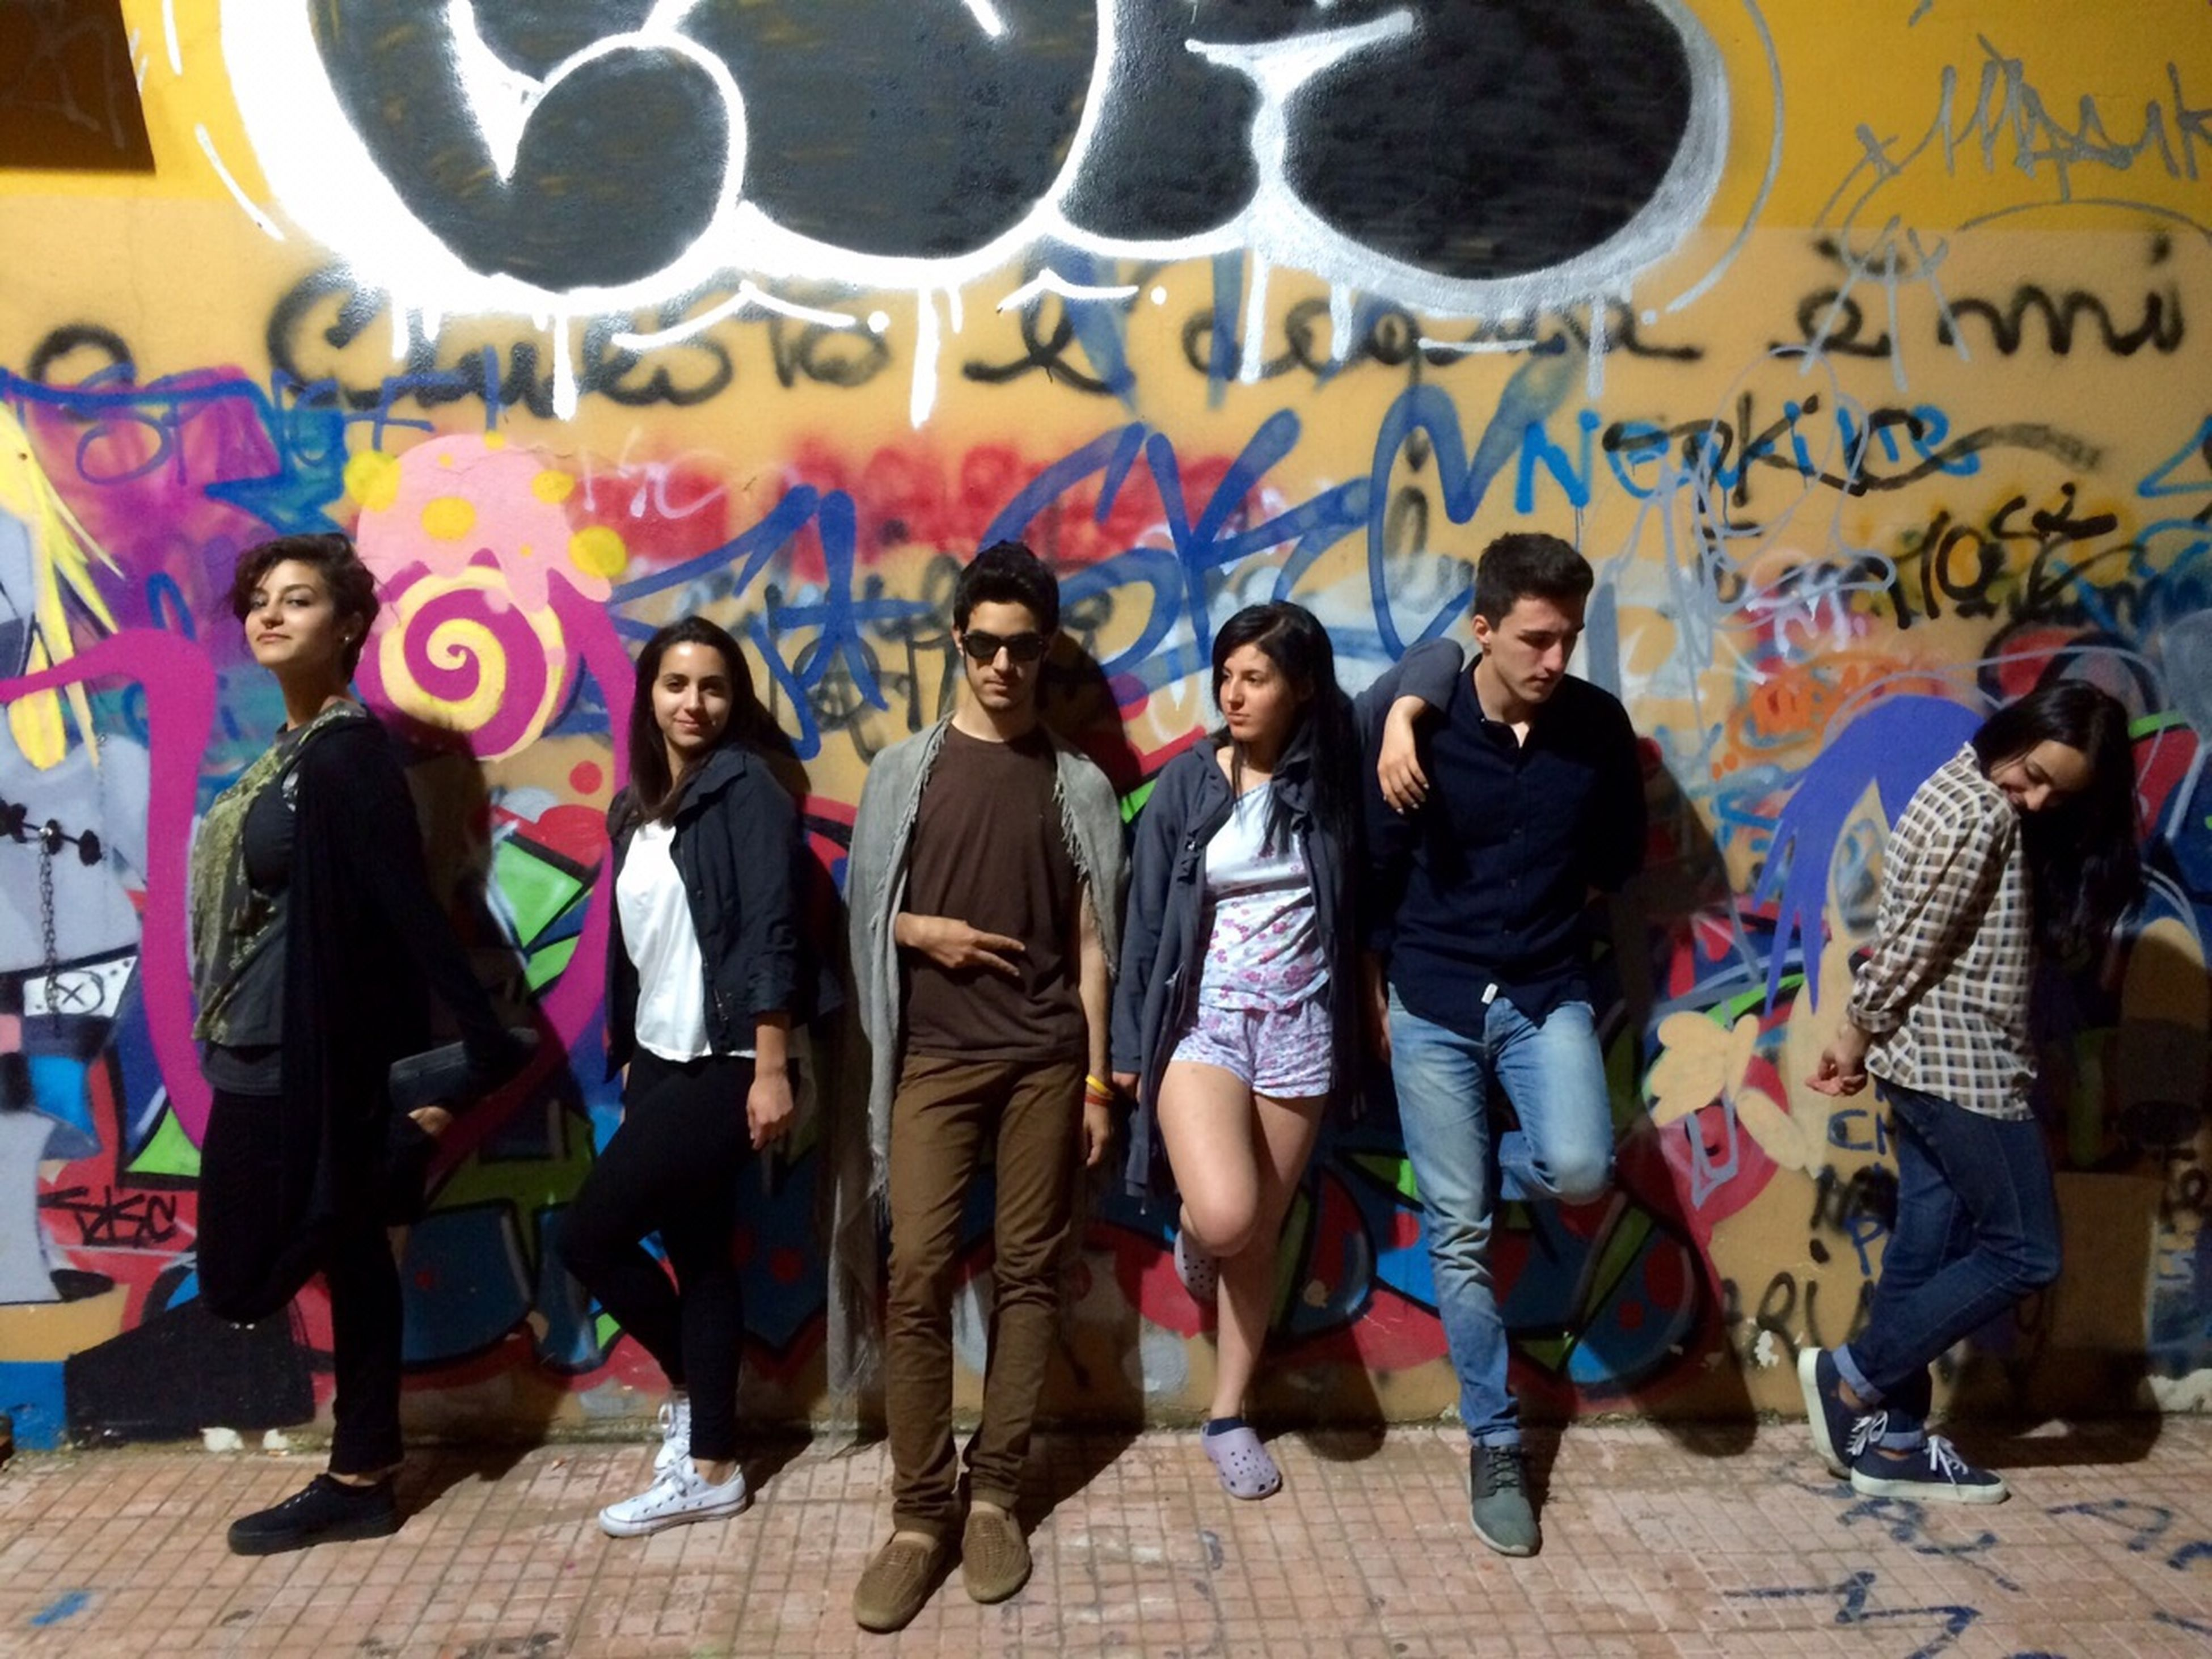 lifestyles, leisure activity, text, men, large group of people, togetherness, casual clothing, western script, person, full length, communication, wall - building feature, happiness, friendship, standing, graffiti, fun, love, young men